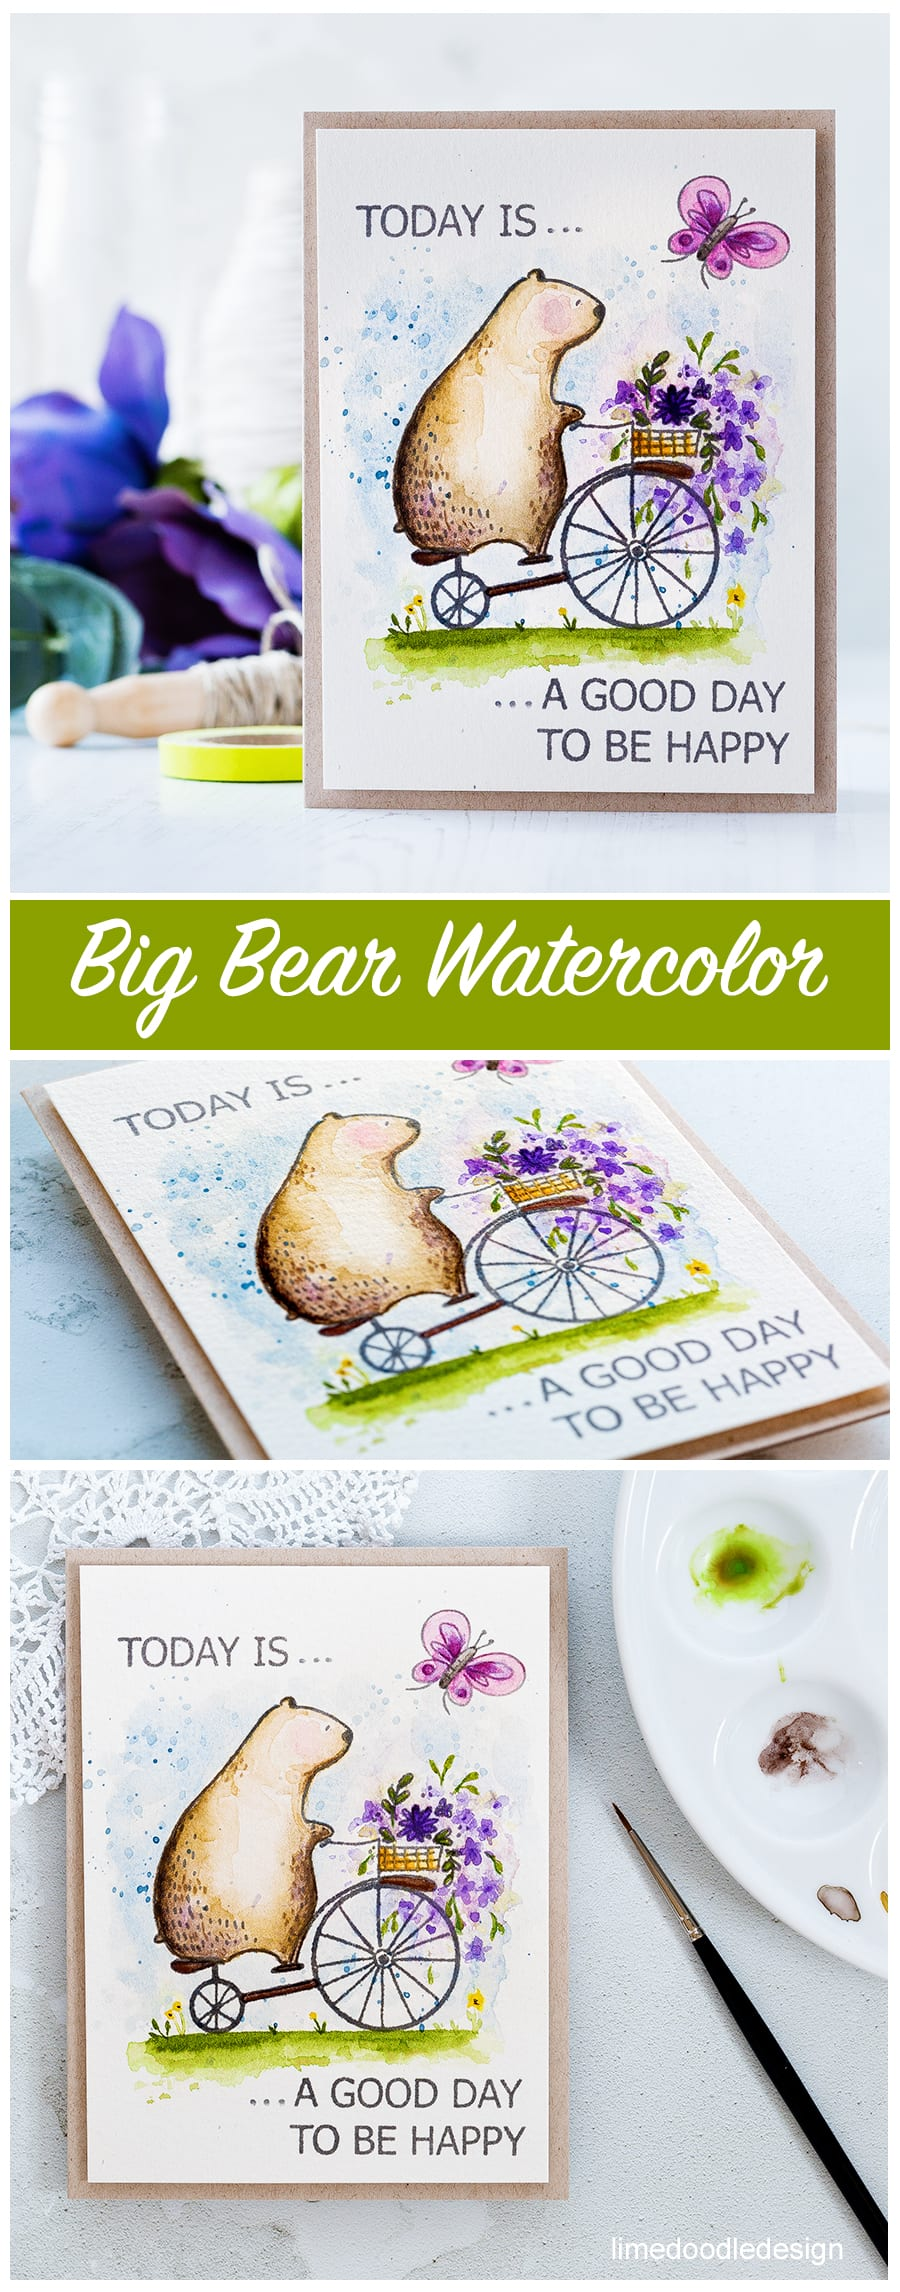 Big Bear watercolor by Debby Hughes using a new Big Bear & Bird set for Waffle Flower. Find out more about this card and the new release by clicking on the following link: https://limedoodledesign.com/2017/03/waffle-flower-spring-release-watercolored-big-bear/